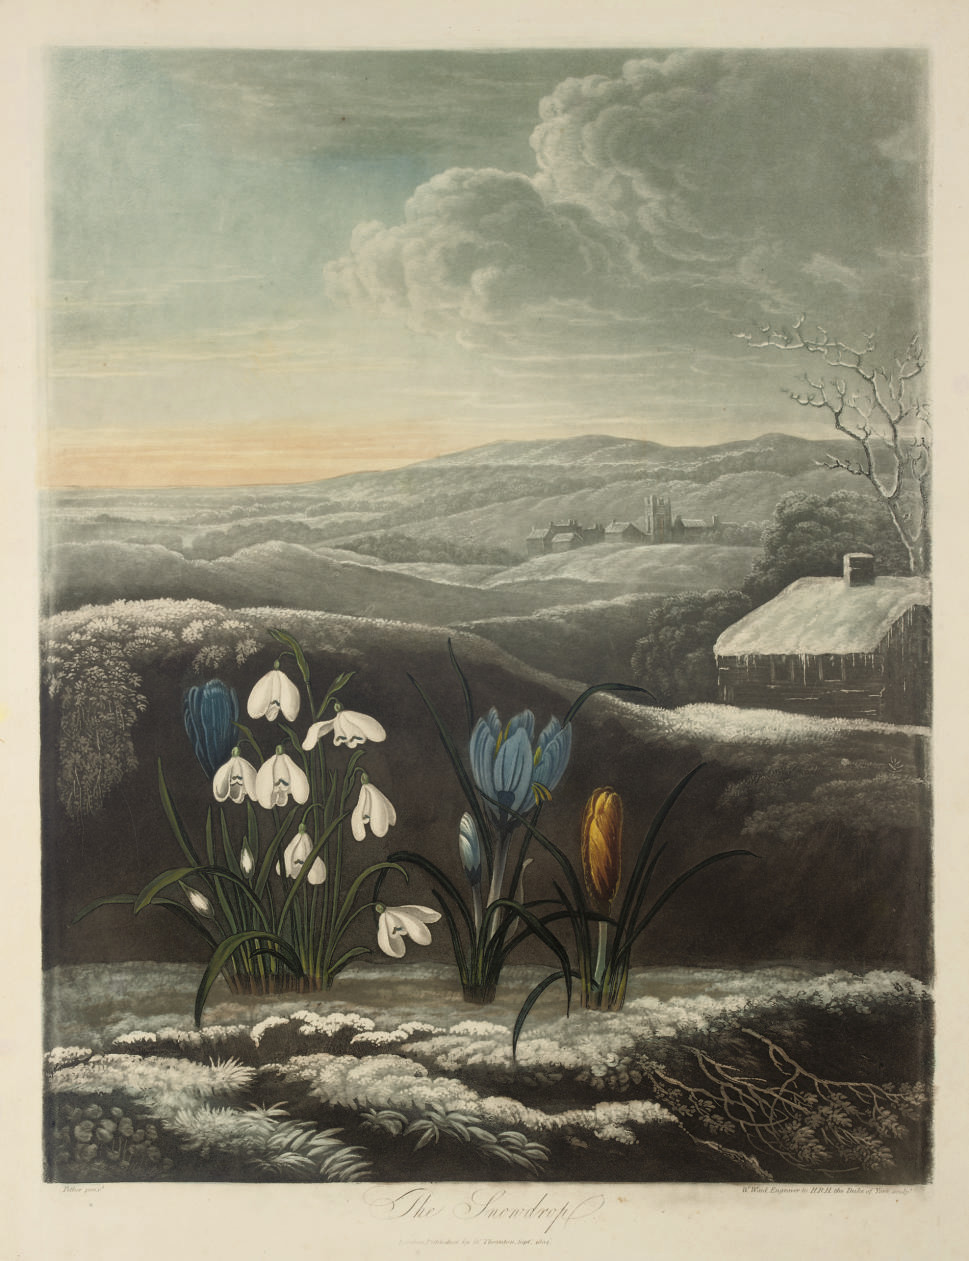 William Ward (1766-1826), after William Pether